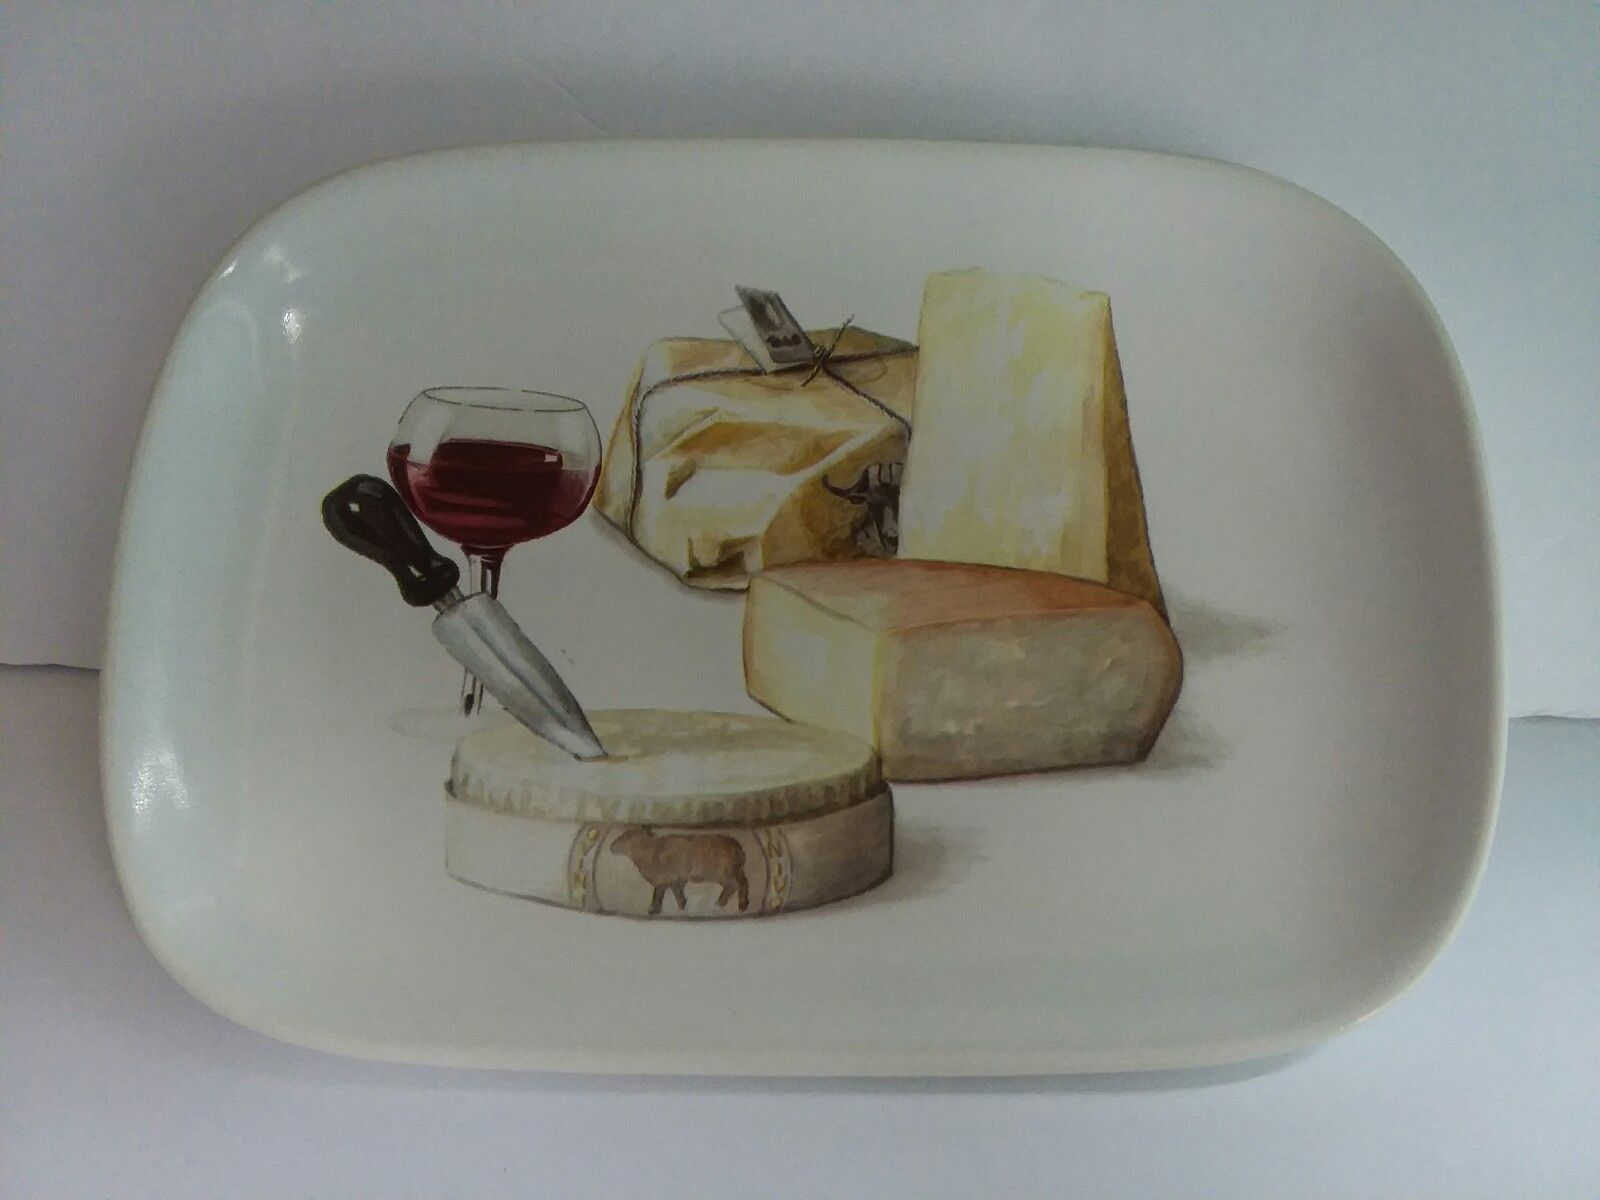 Italy Ceramisia Cheese Appetizer Sandwich Plate Entertaining Wine Party EXC & Italy Ceramisia Cheese Appetizer Sandwich and 50 similar items